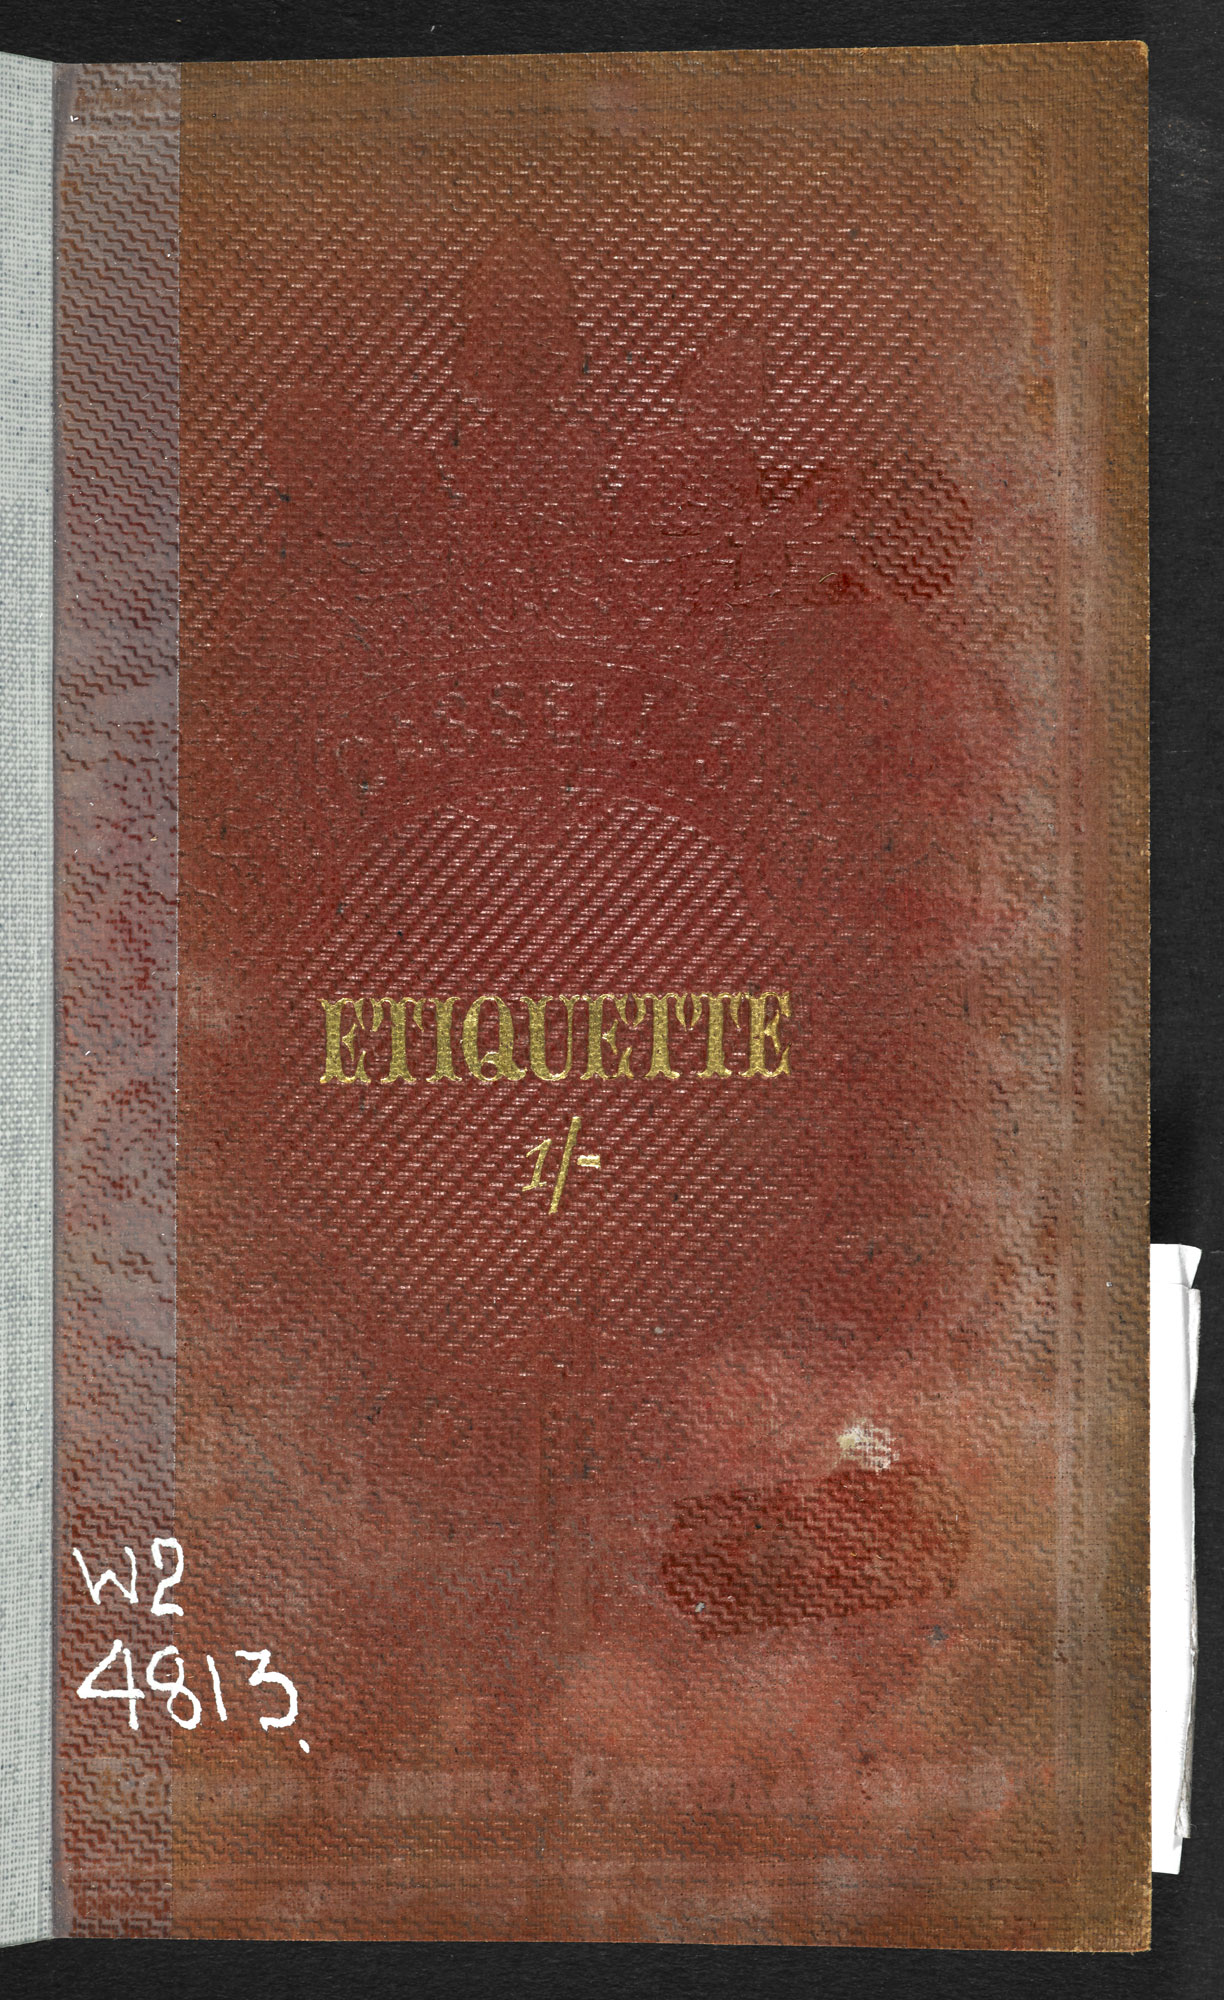 The Handbook of Etiquette [page: front cover]